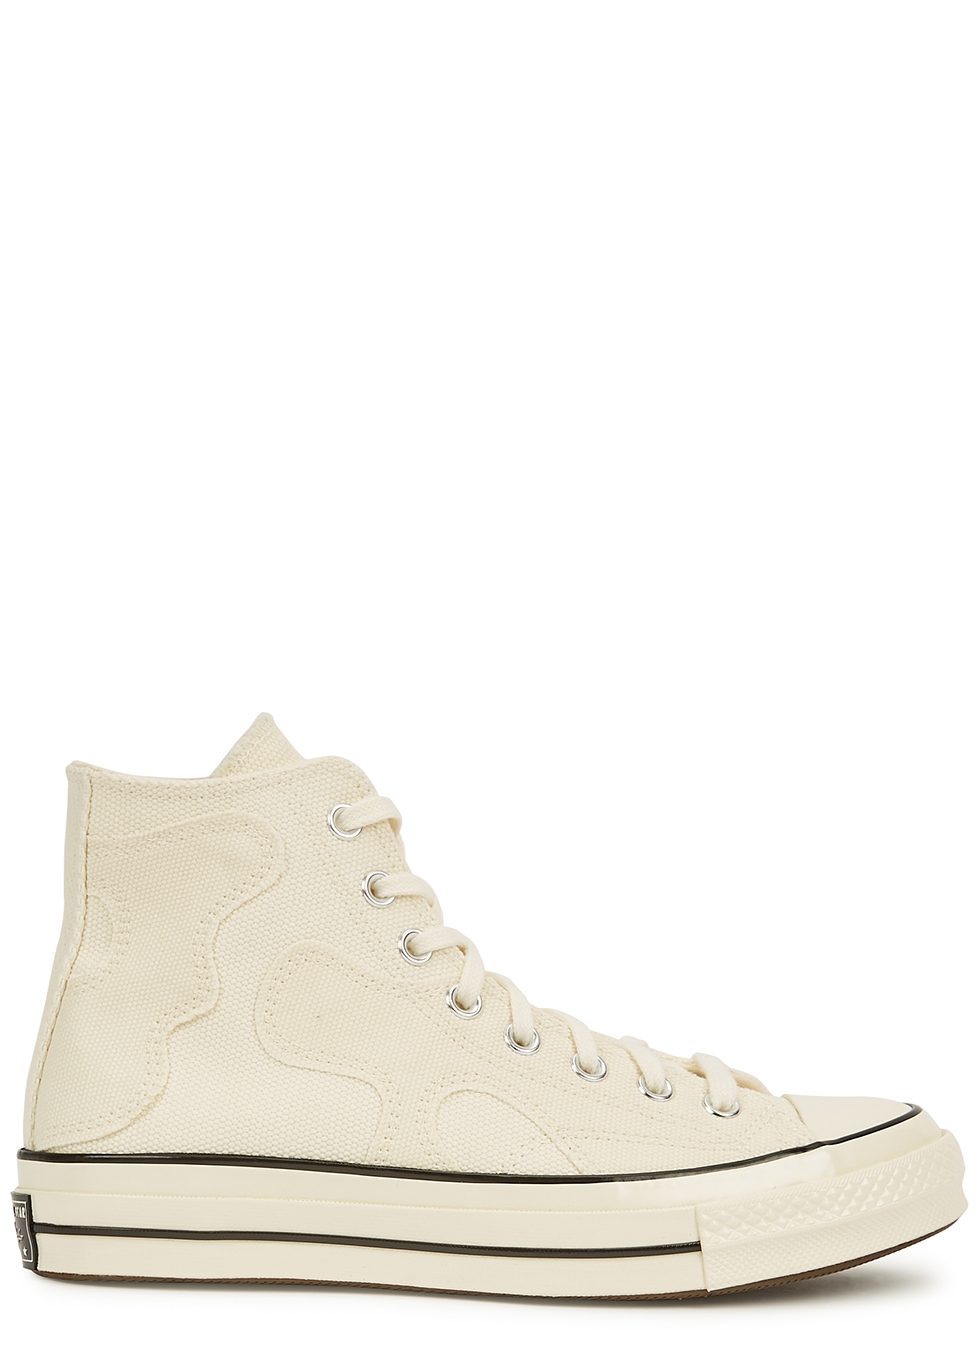 Chuck 70 cream canvas hi-top sneakers